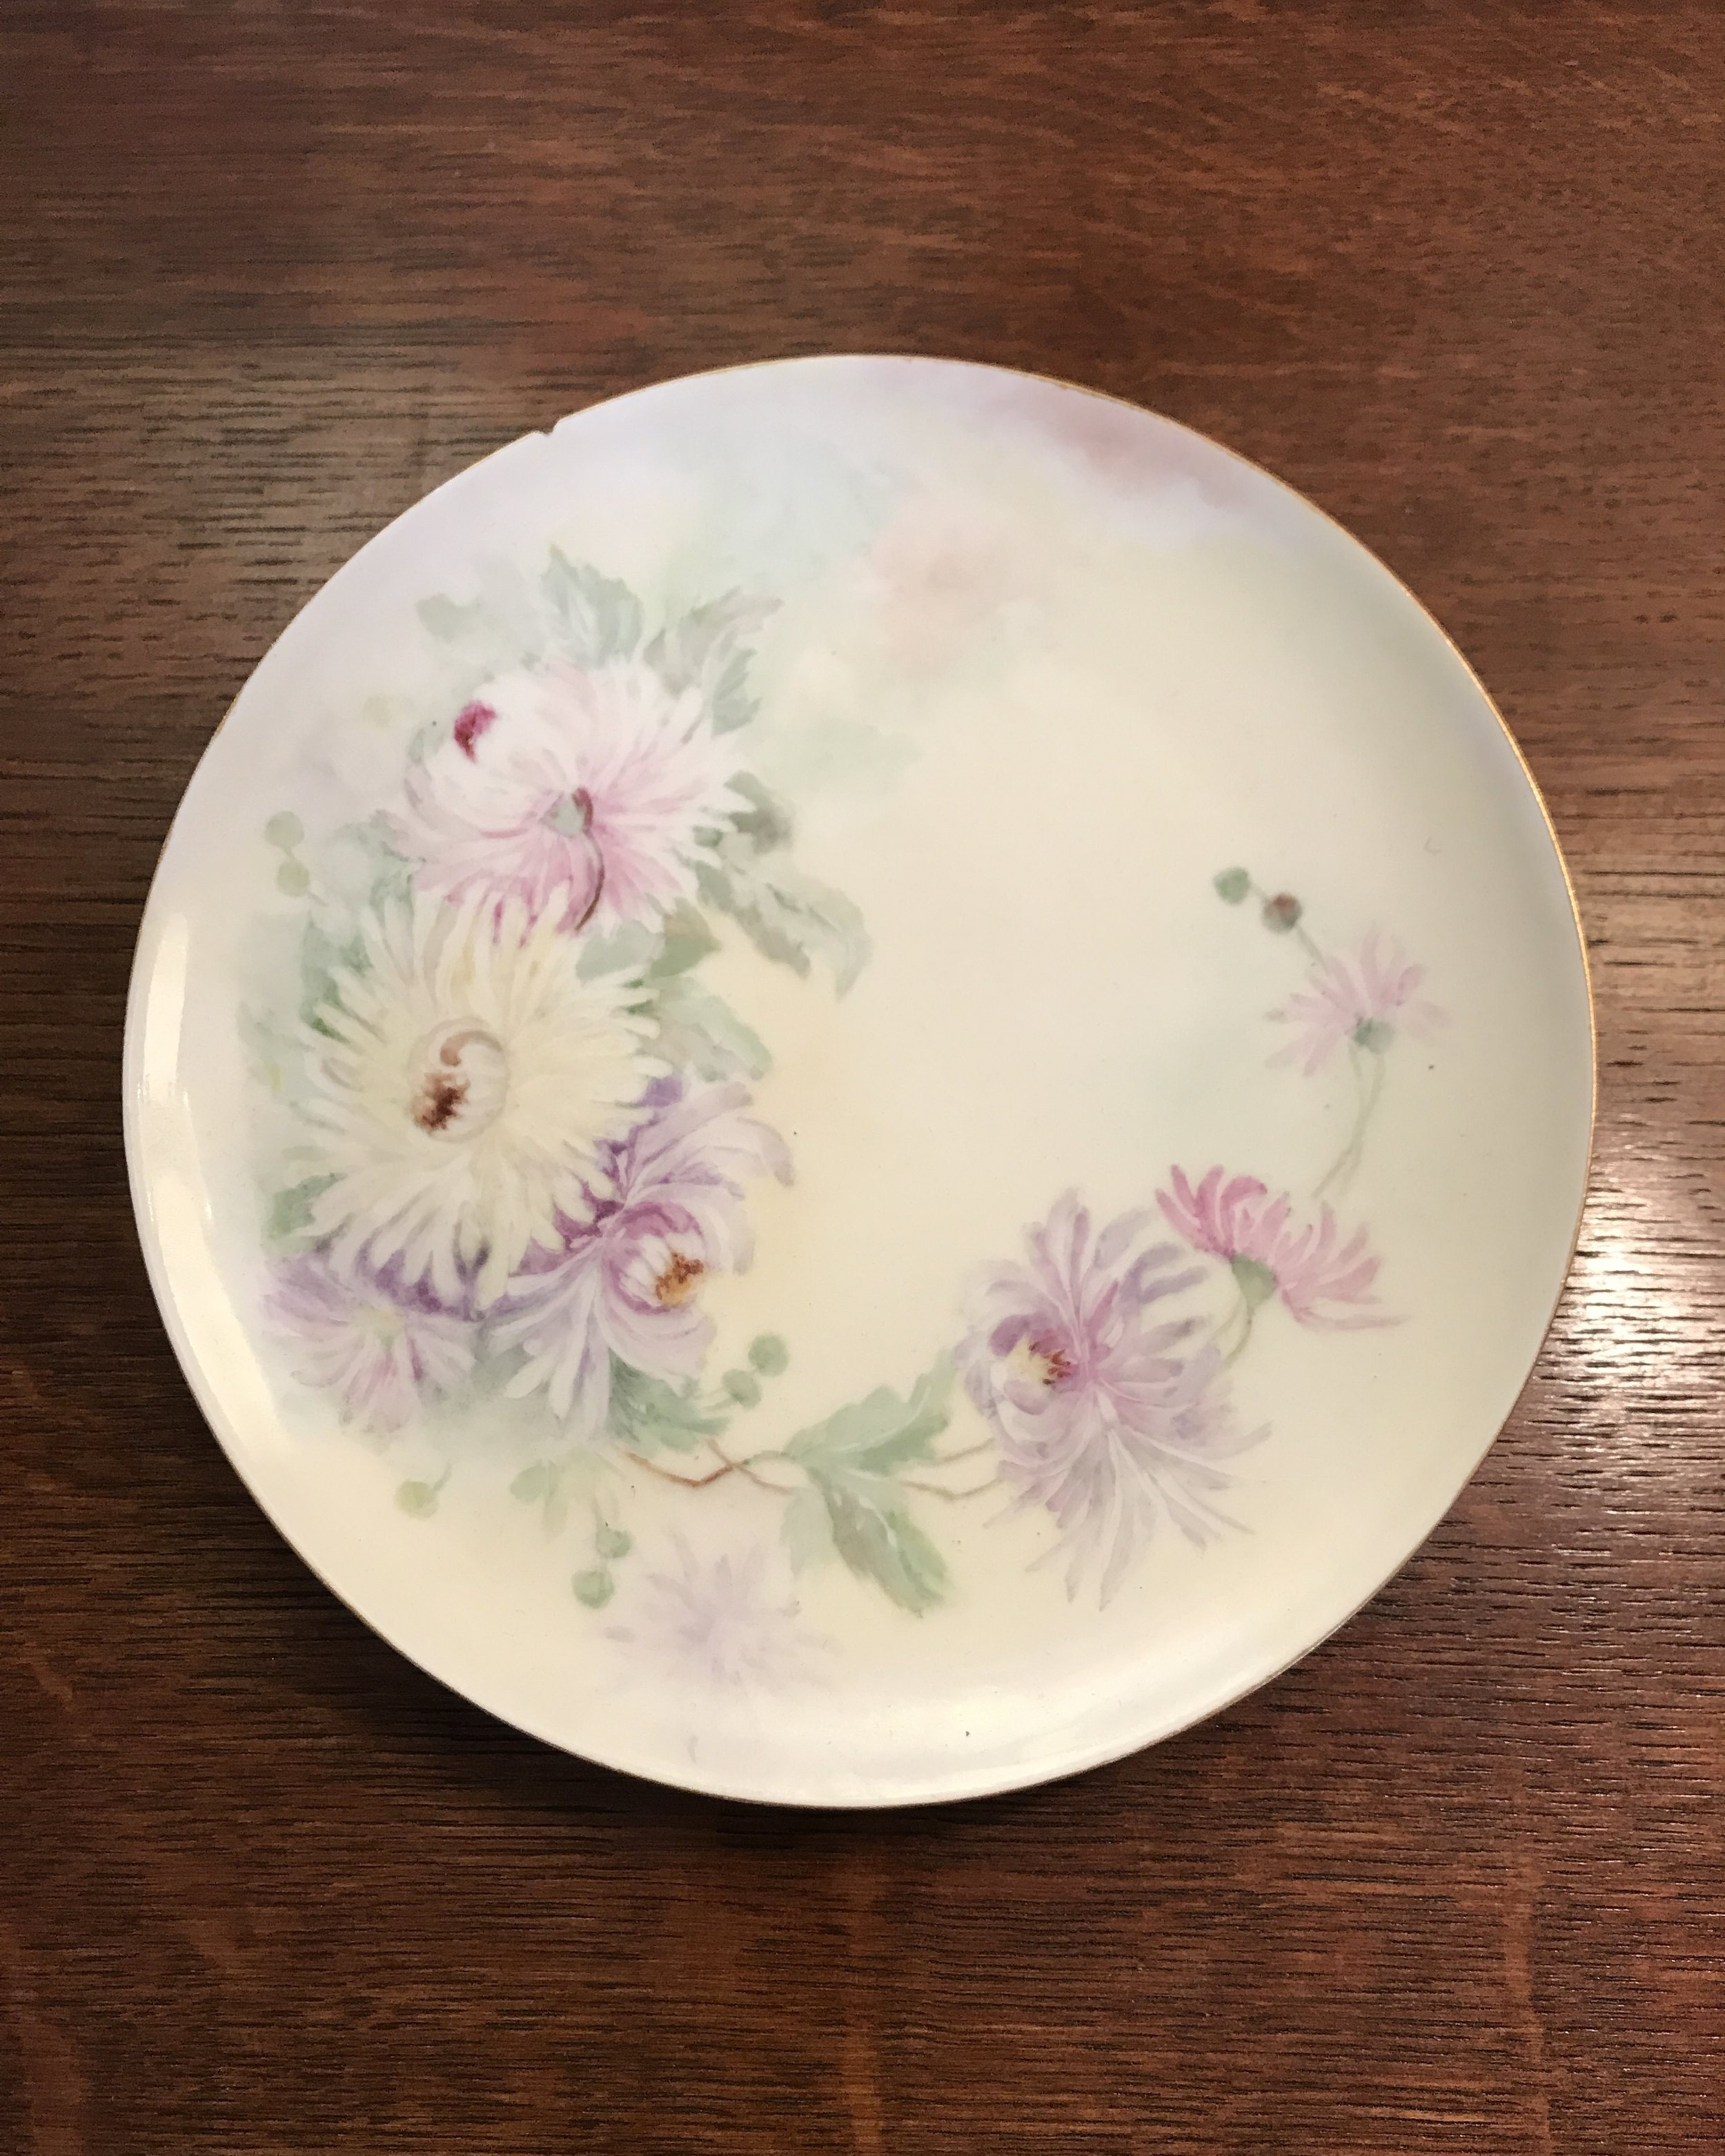 Haviland France Limoge Plate - Beautiful hand-painted dahlias on this French porcelain. The mark on the back was used from the 1890s to the 1930s. A similar plate with similarly painted dahlias online was dated 1920. There is a small chip and it carries a slight yellow patina. Plate hanger included..$20